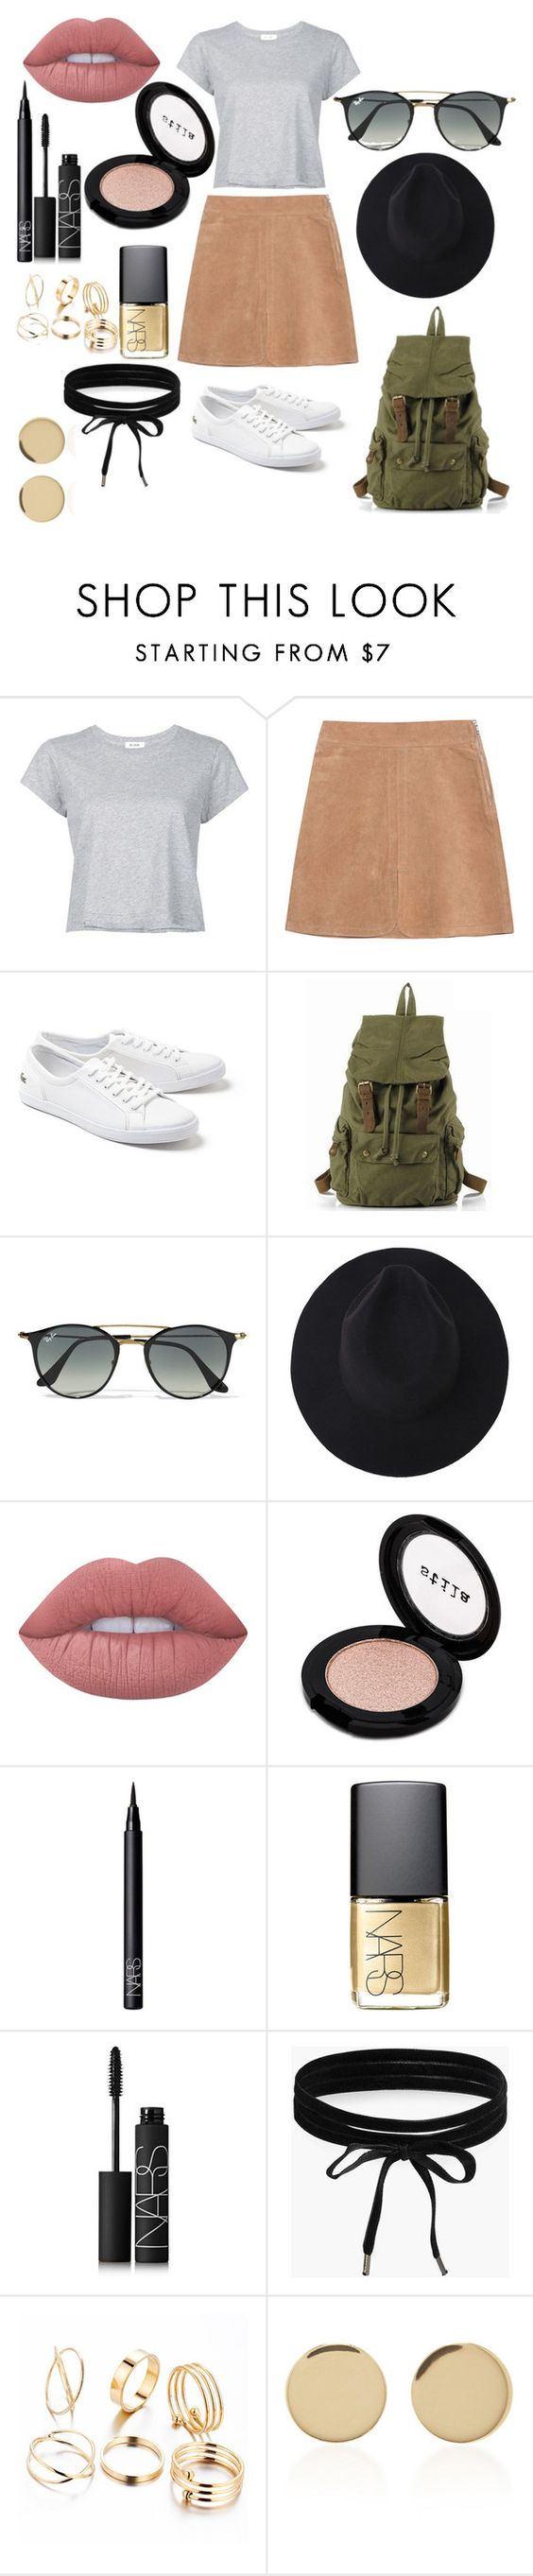 """""""Untitled #86"""" by kailey-peters ❤ liked on Polyvore featuring RE/DONE, See by Chloé, Lacoste, Ray-Ban, Lime Crime, Stila, NARS Cosmetics, Boohoo and Magdalena Frackowiak"""